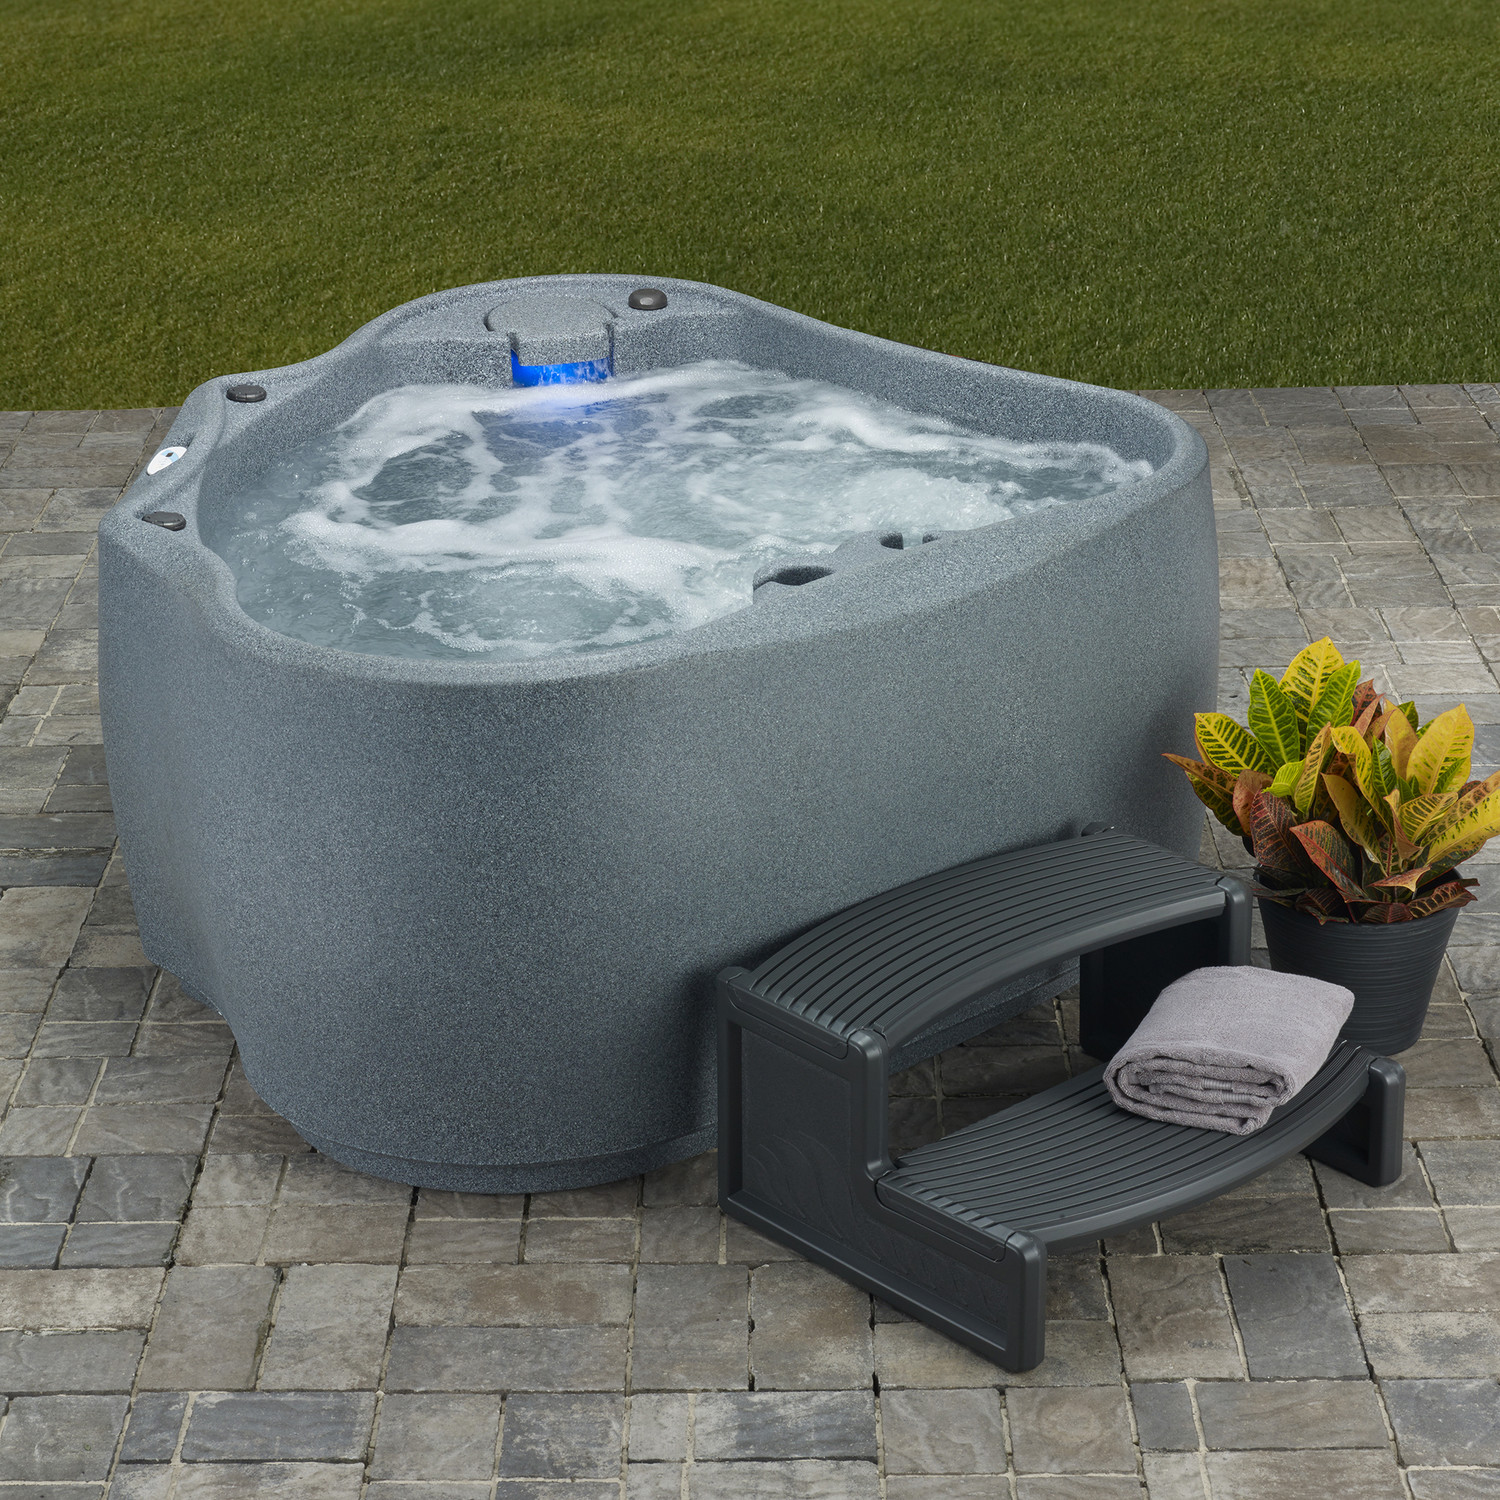 Jacuzzi Pool Pump Reviews Aquarest Ar 300 Spa Hot Tub Clearwater Pool And Spa